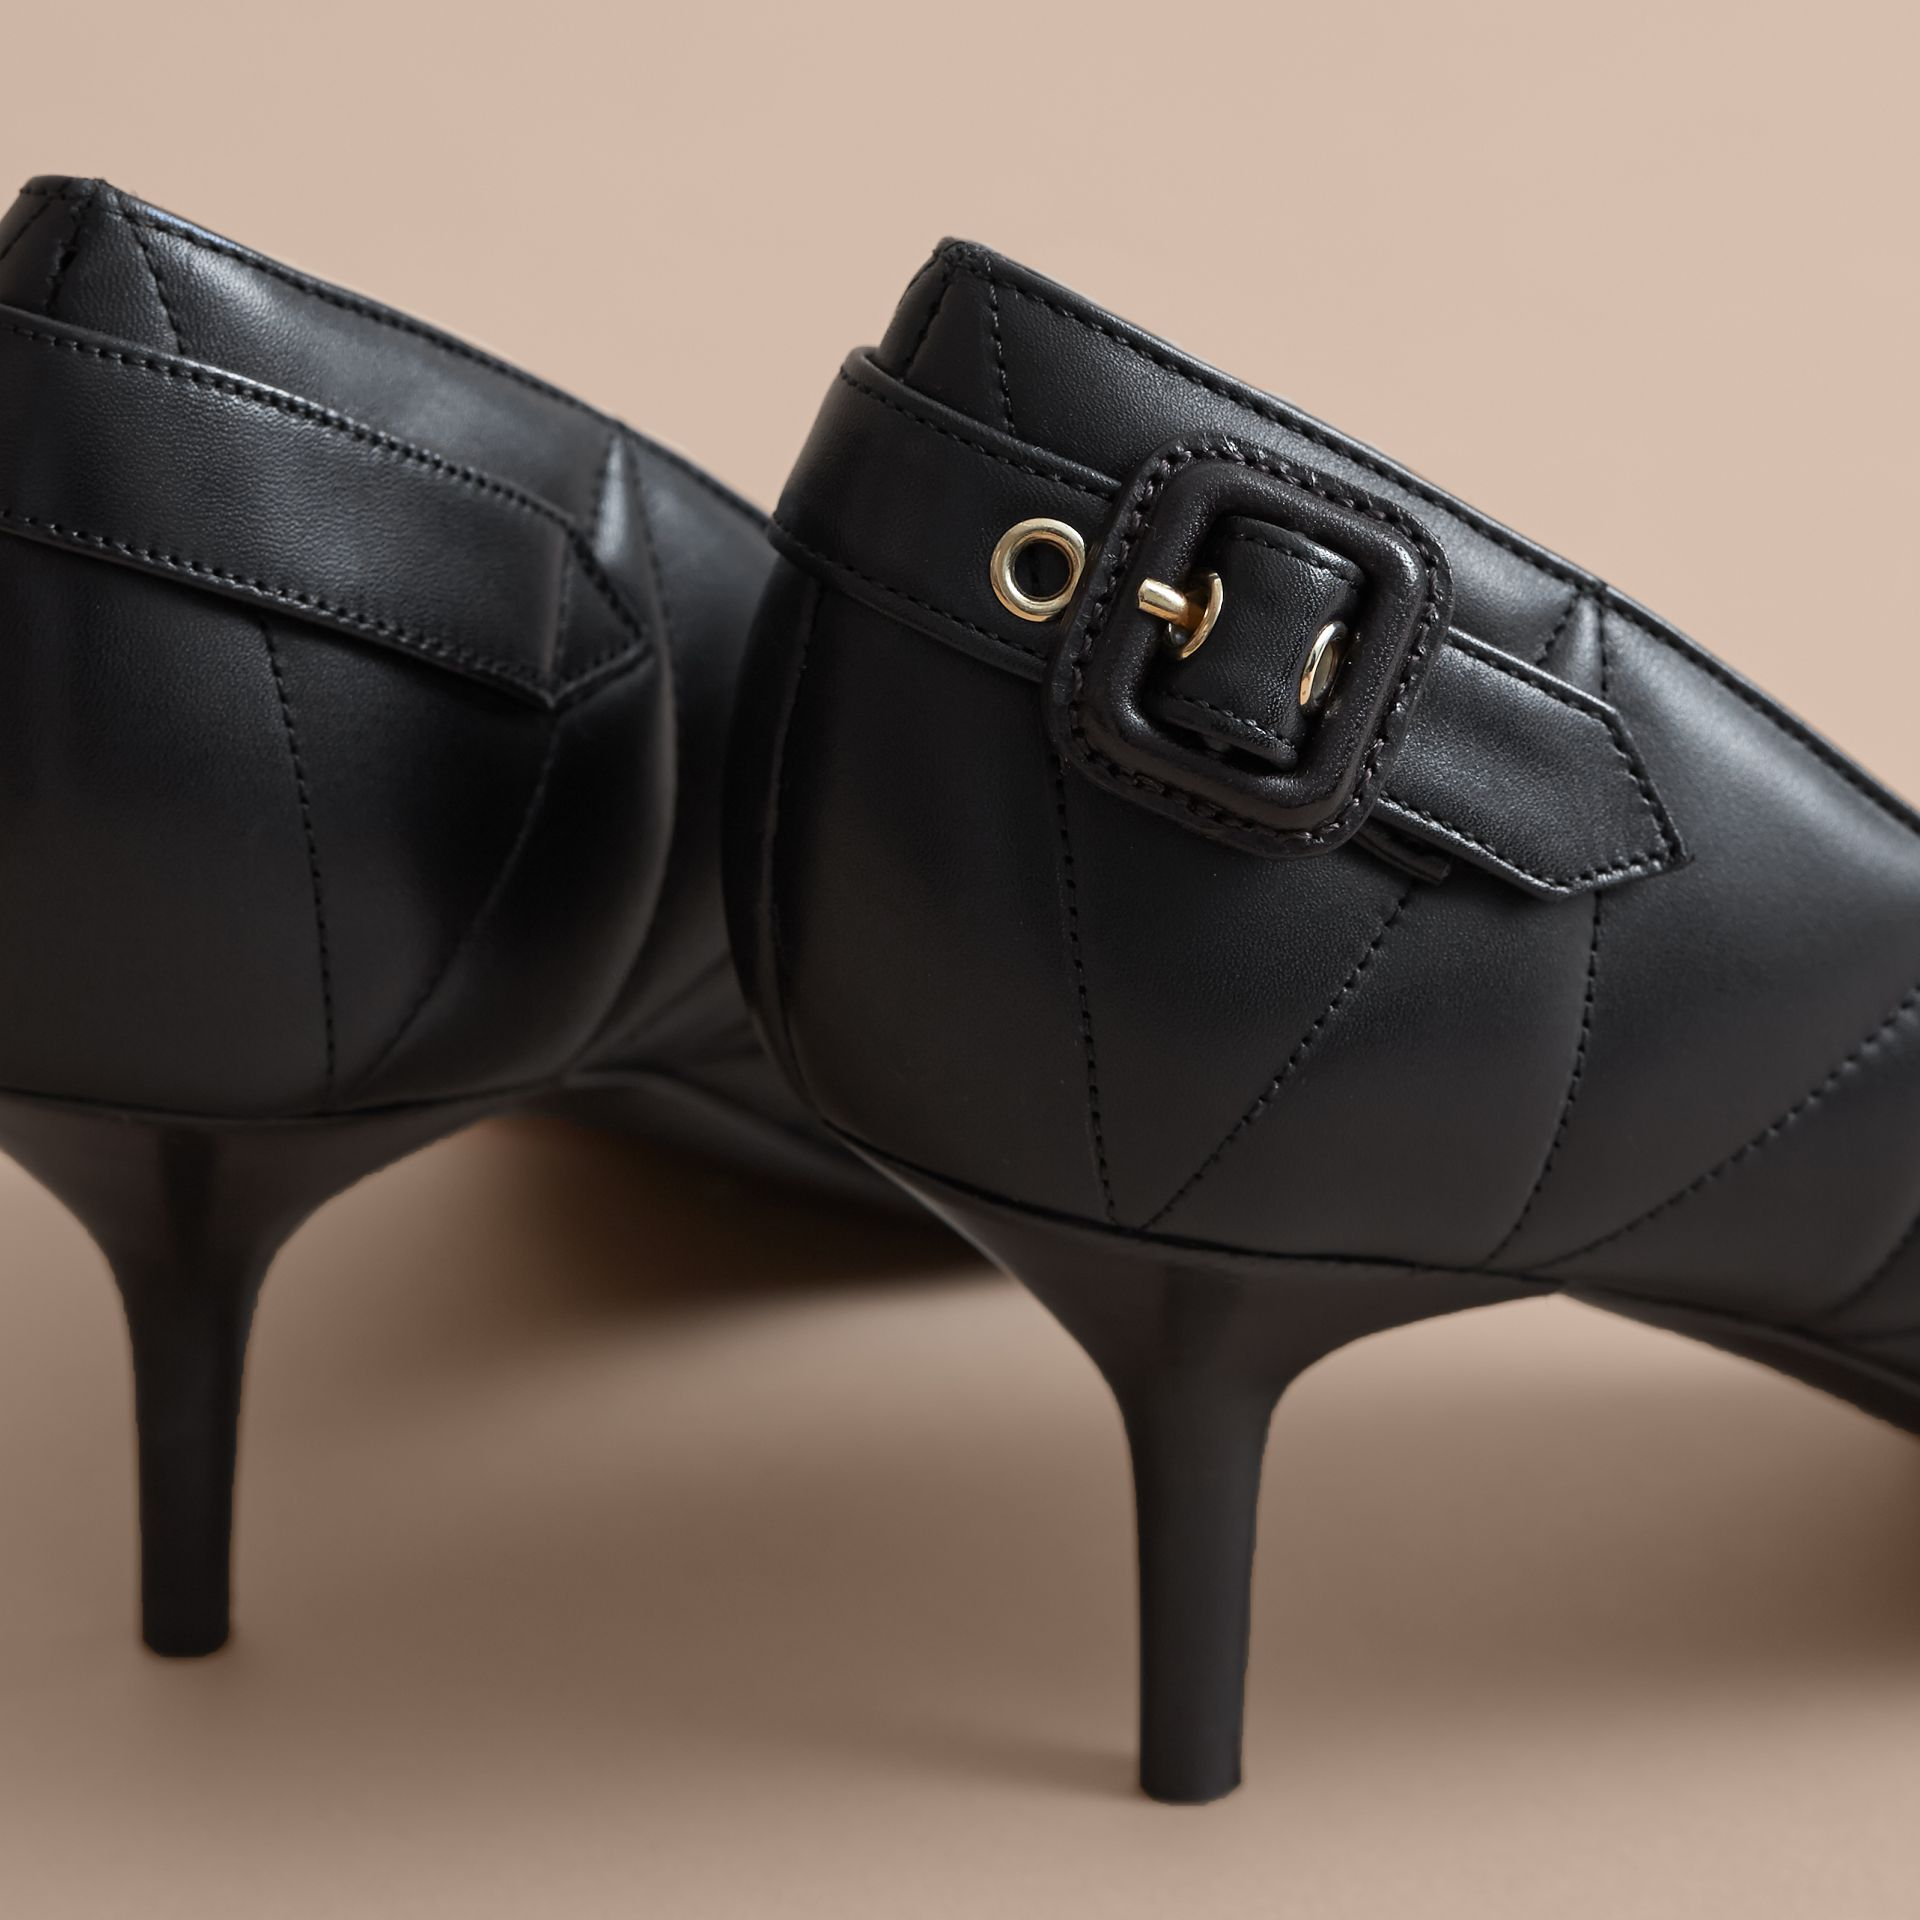 Quilted Leather D'Orsay Pumps in Black - Women | Burberry - gallery image 5